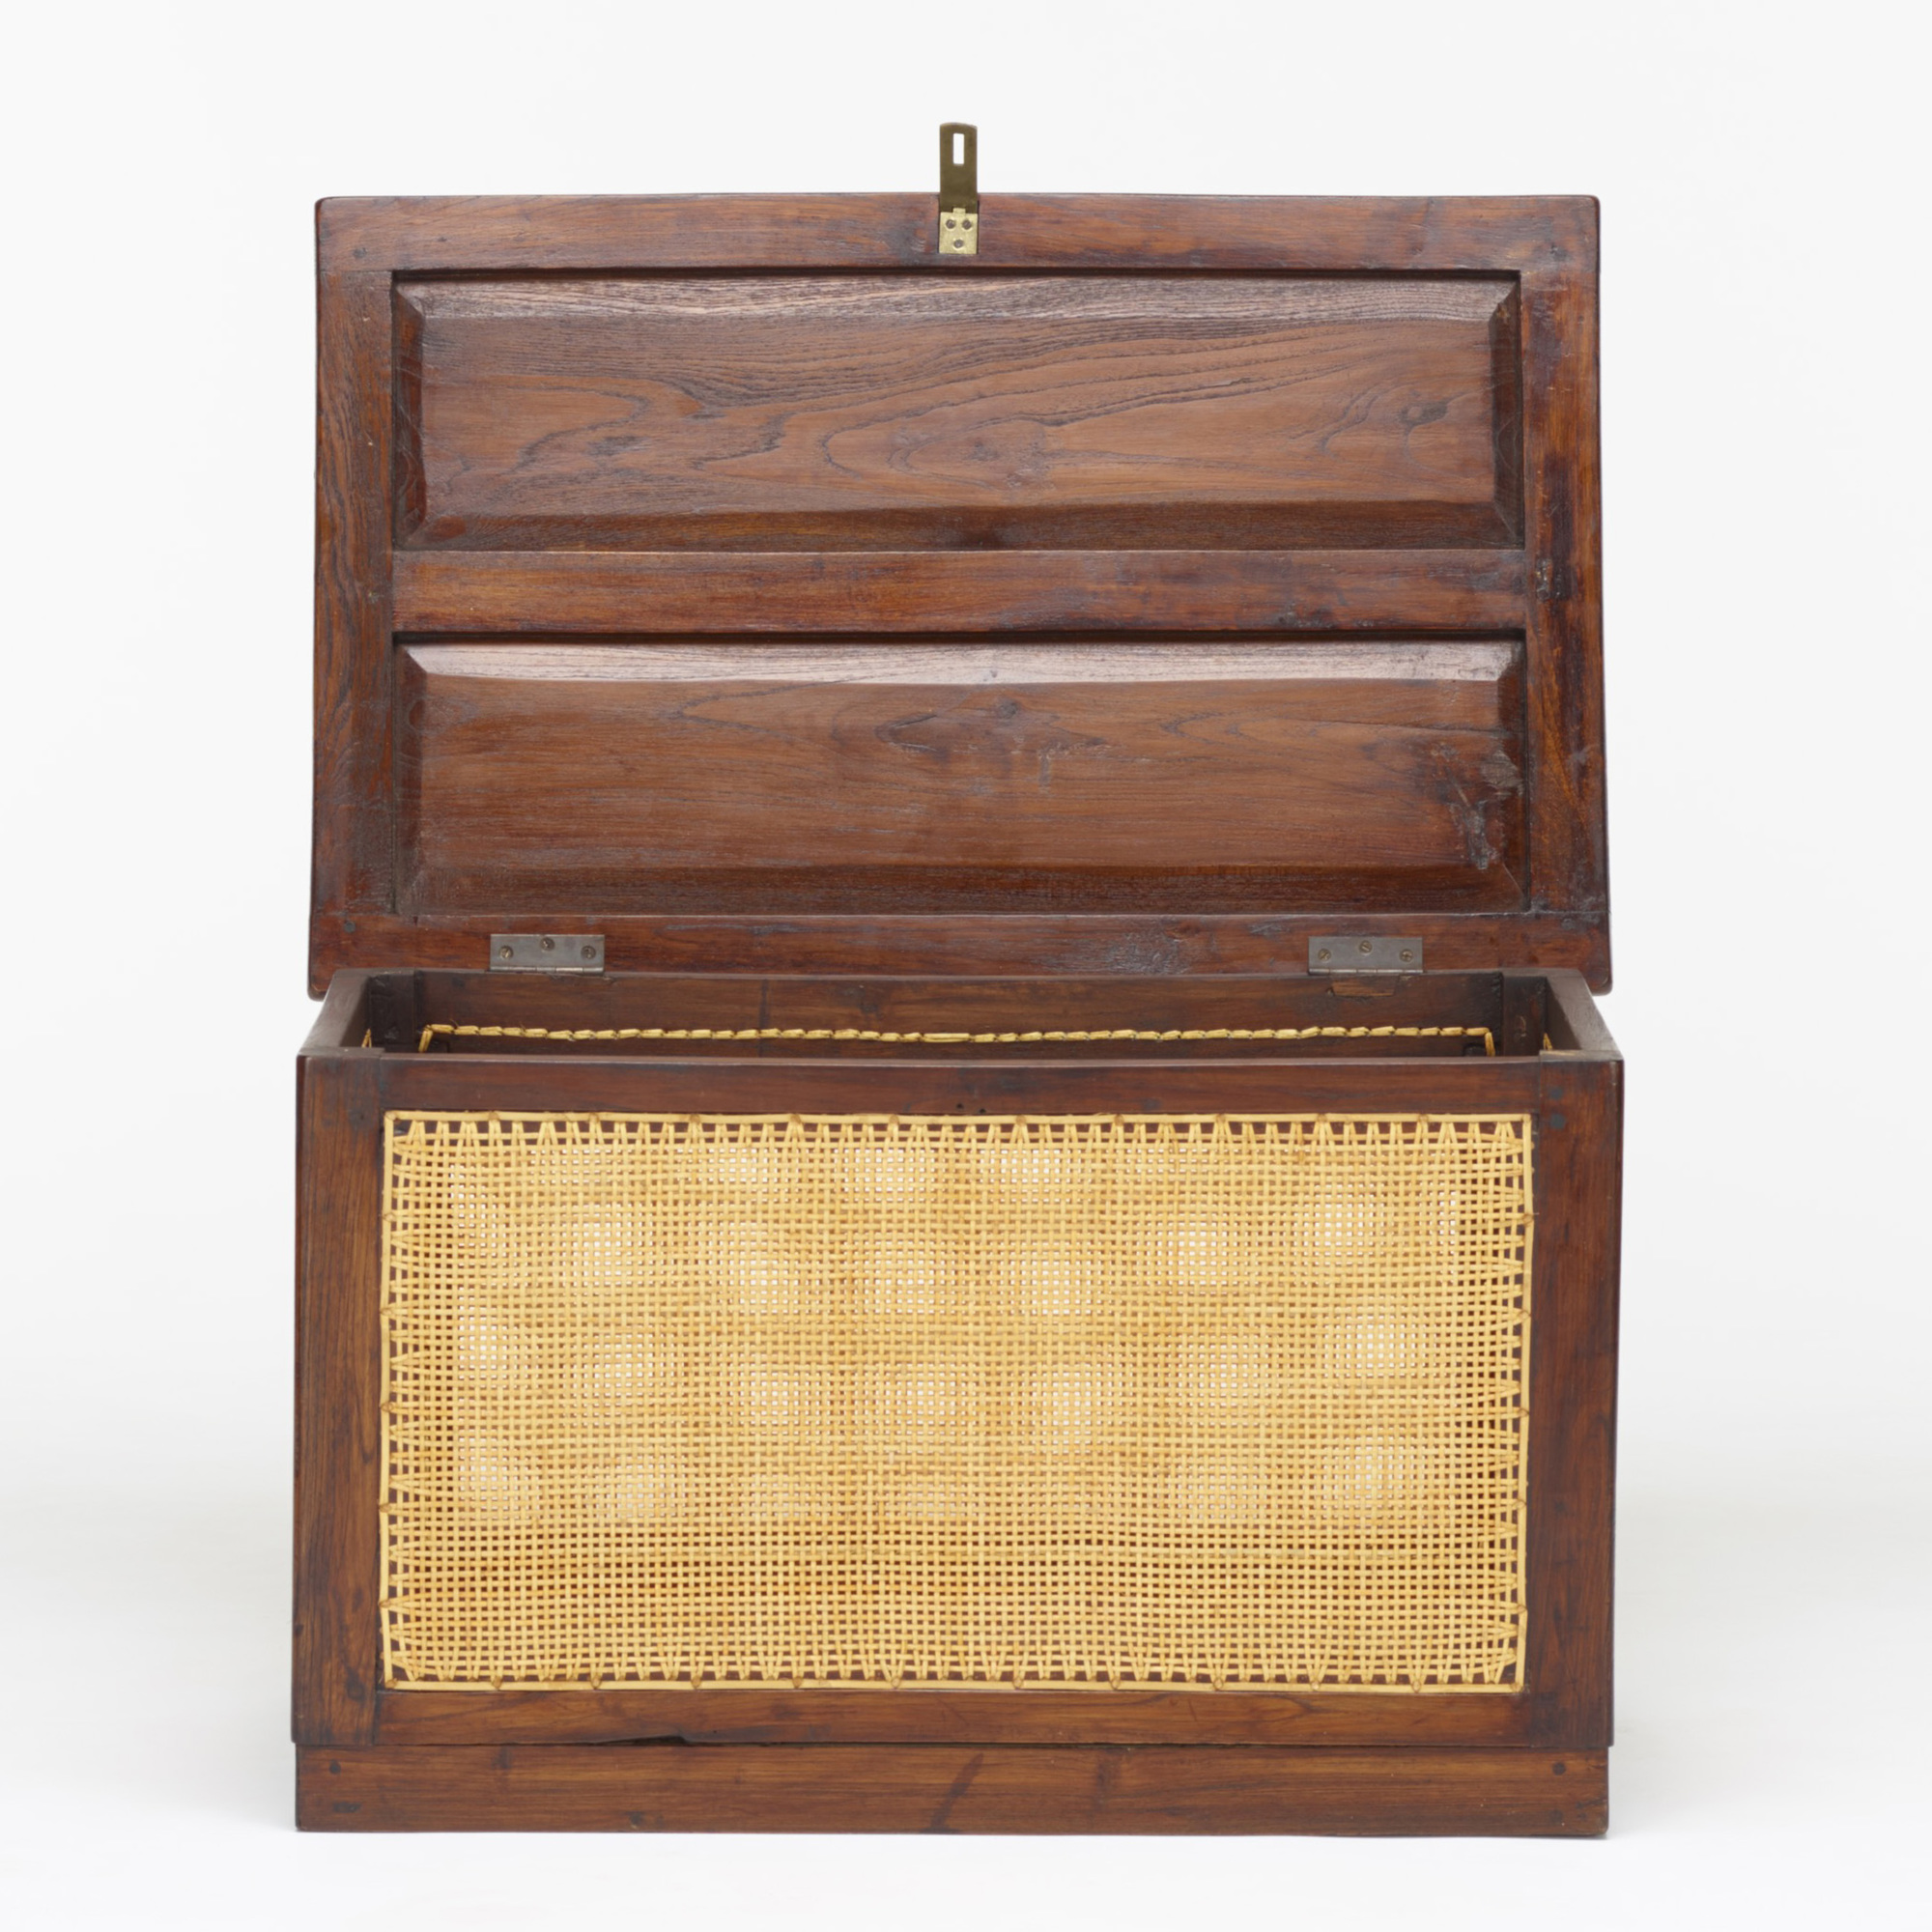 108: Pierre Jeanneret / linen chest from the M.L.A. Flats building, Chandigarh (3 of 3)